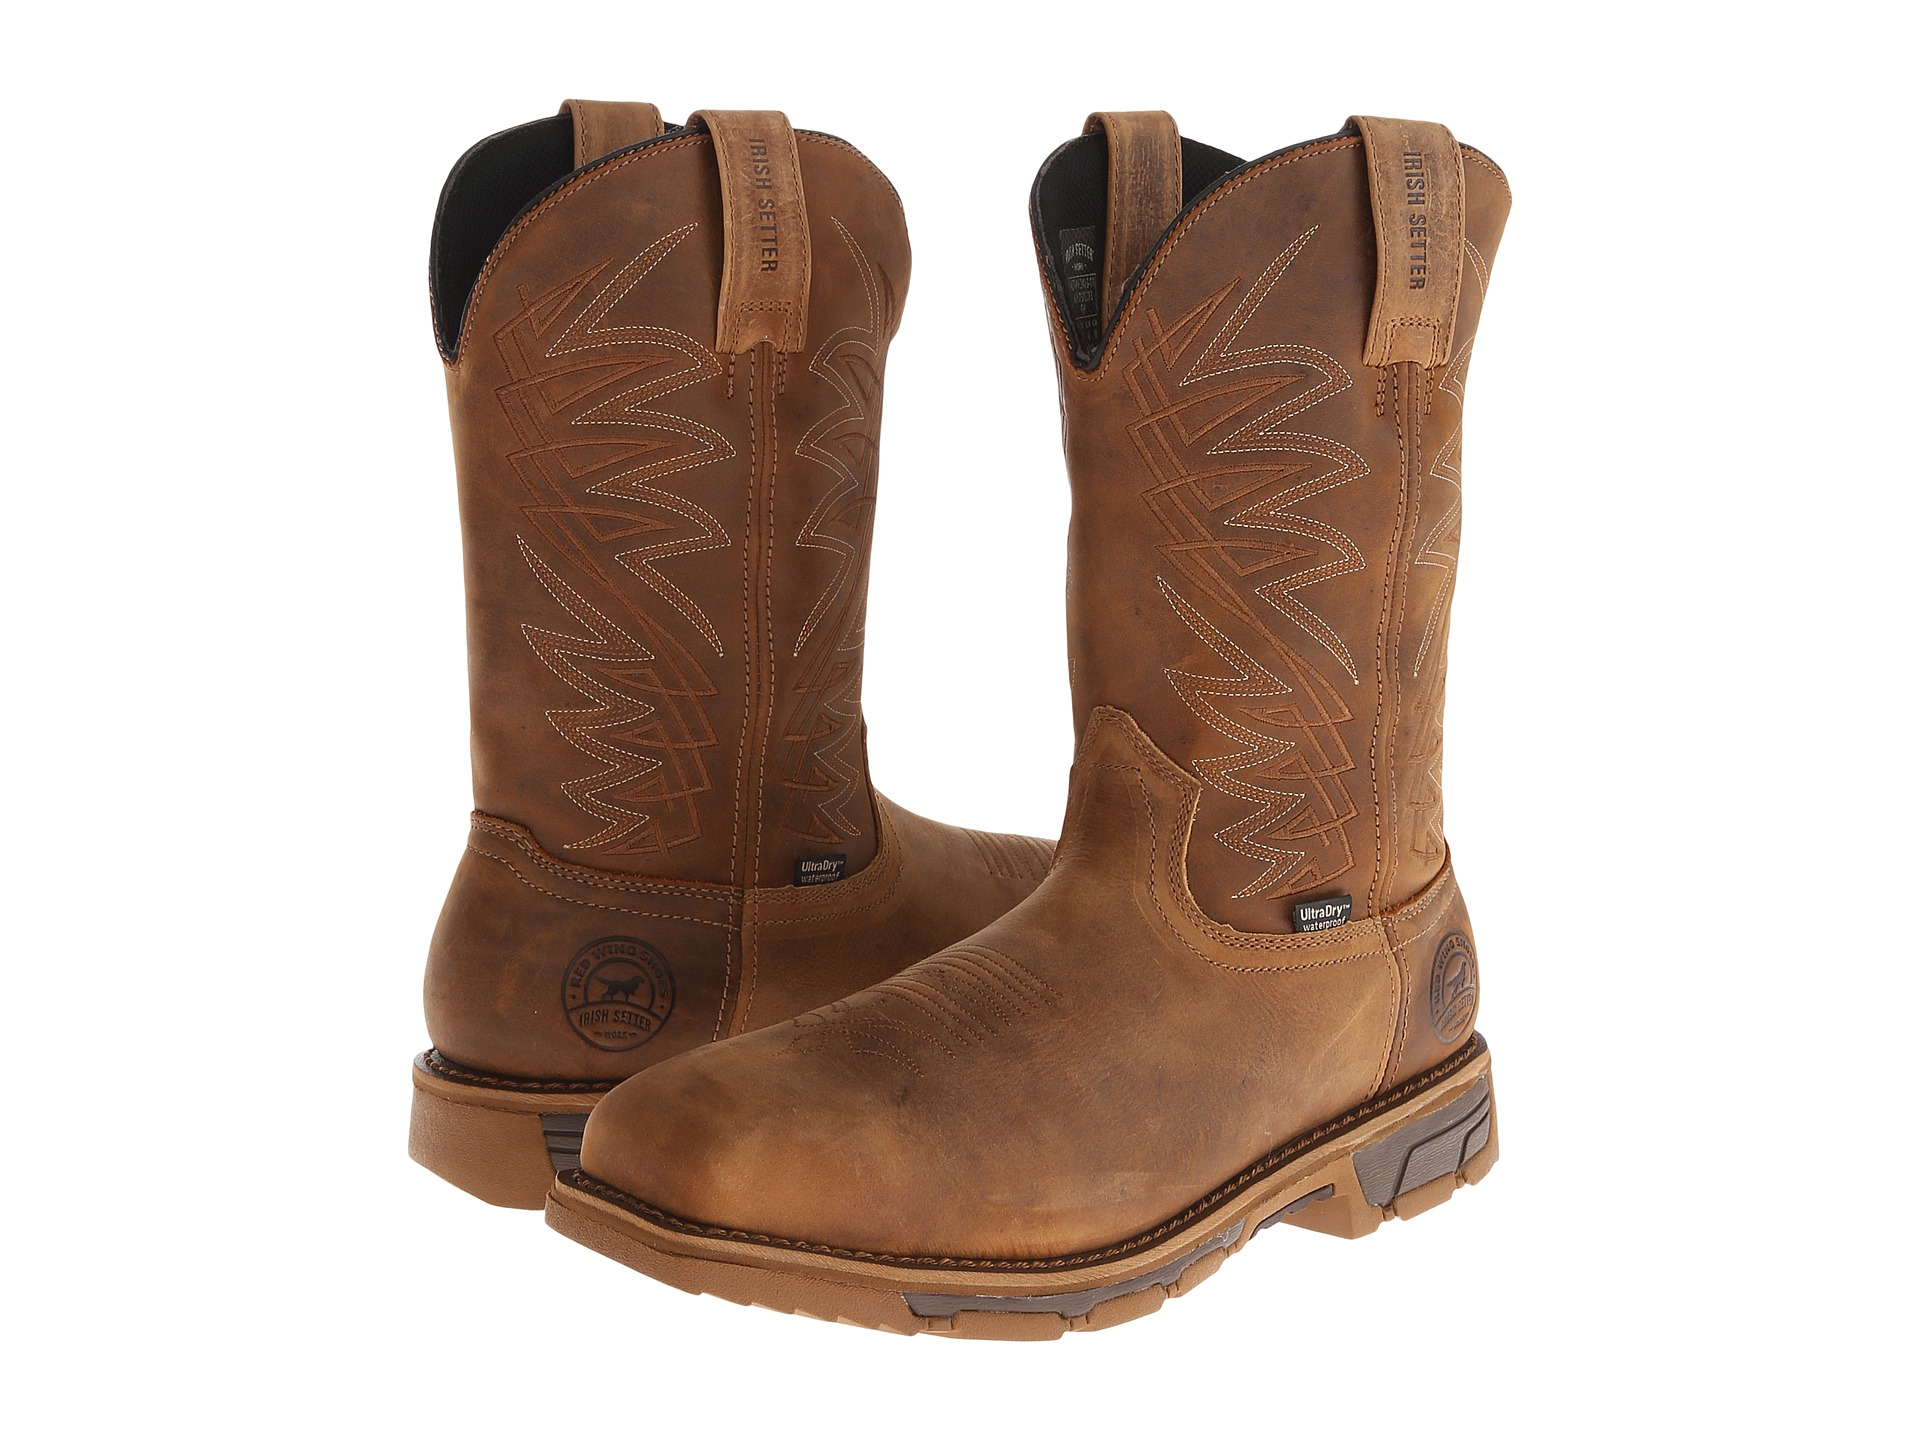 Irish Setter Marshall - Zappos.com Free Shipping BOTH Ways